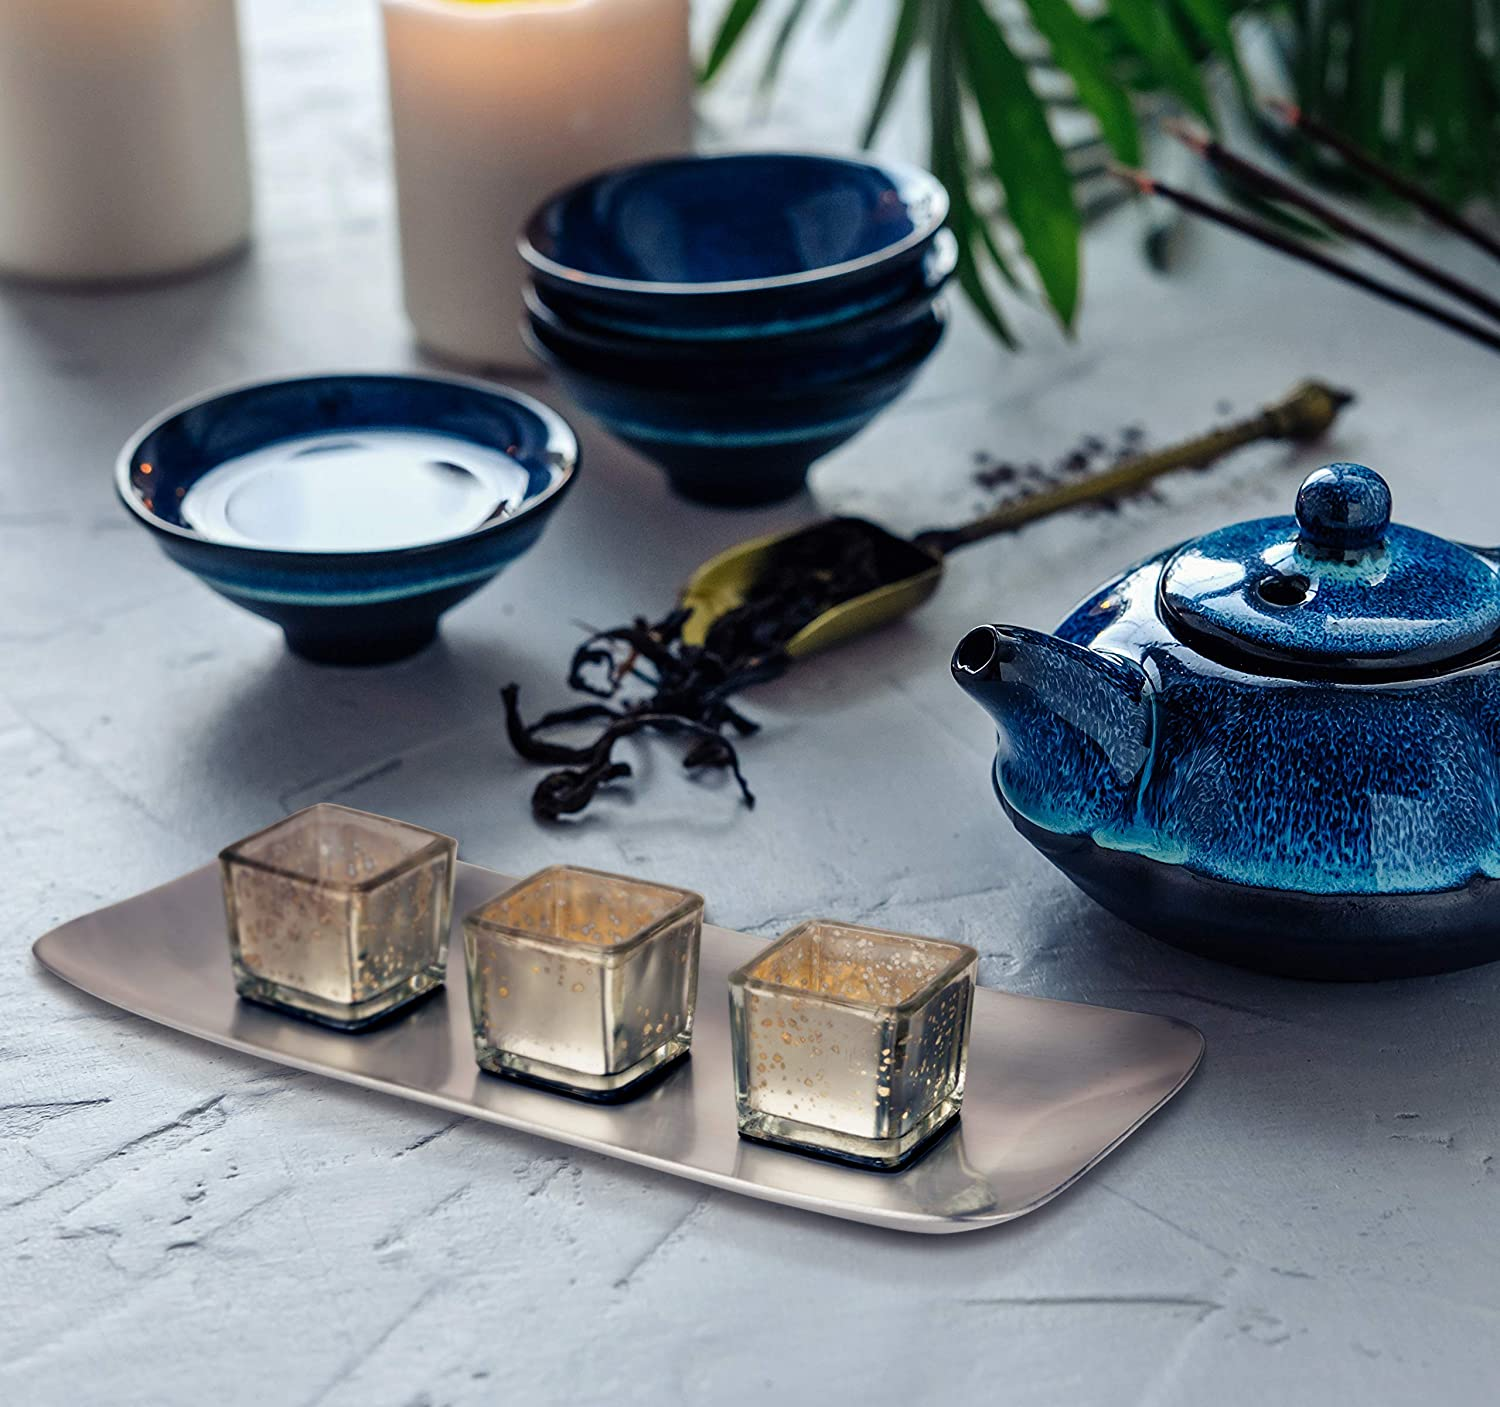 Home Decor Dining Table Accessories Inyo Home Decor Candlescape Set For Living Room Zen Bathroom Decorations As Towel Tray Coffee Table Decor Candle Holder Centerpieces For Dining Room Table Home Kitchen